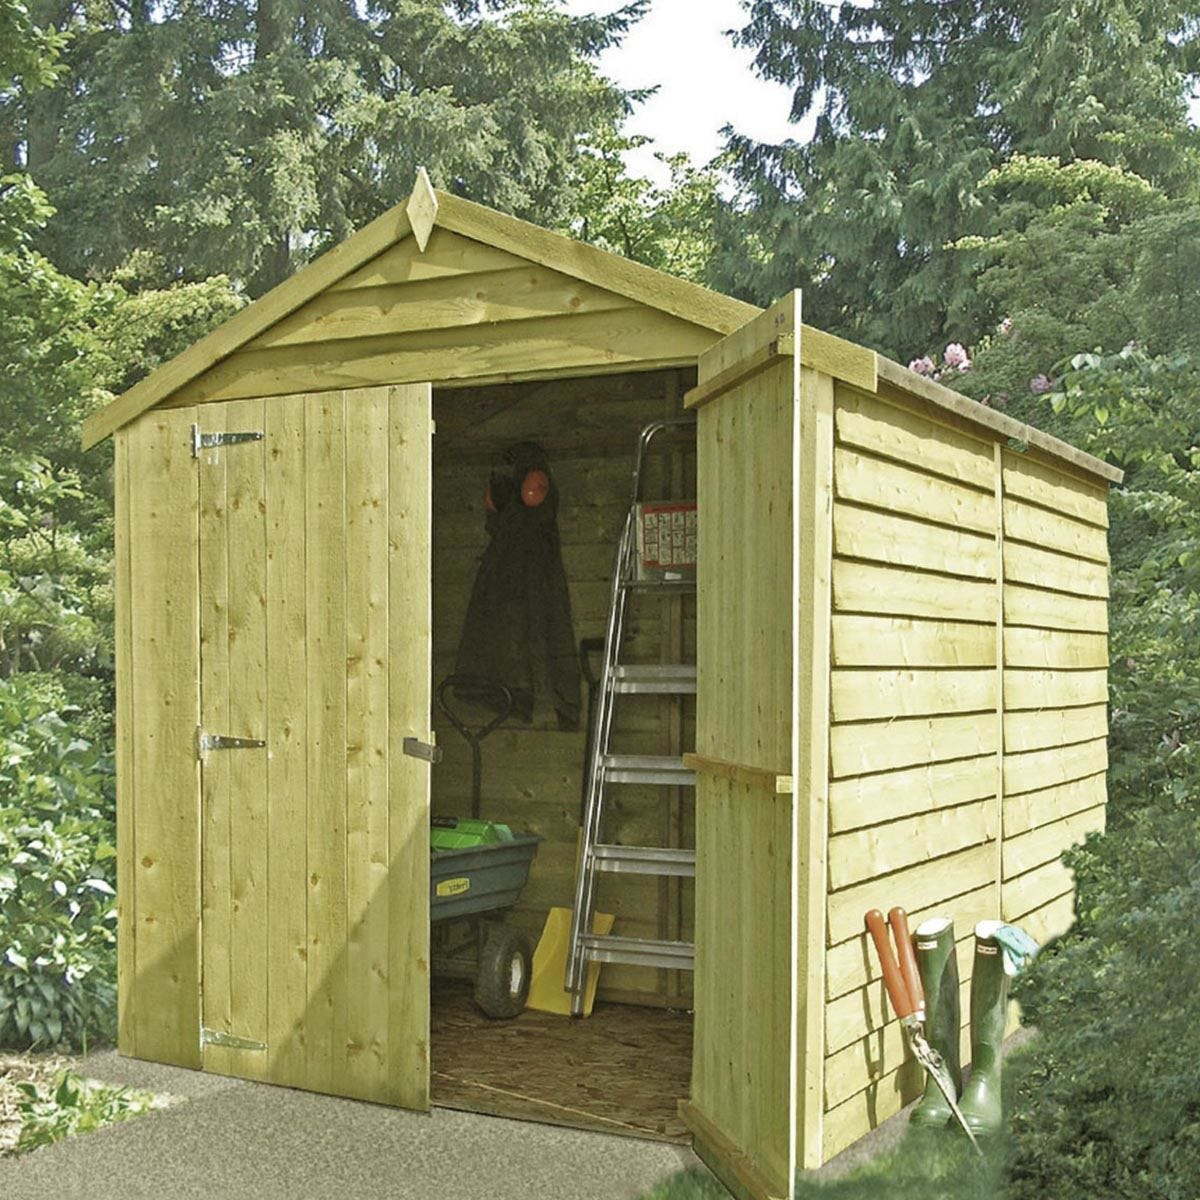 Shire Pressure-Treated Overlap Shed with Double Doors - 8 x 6